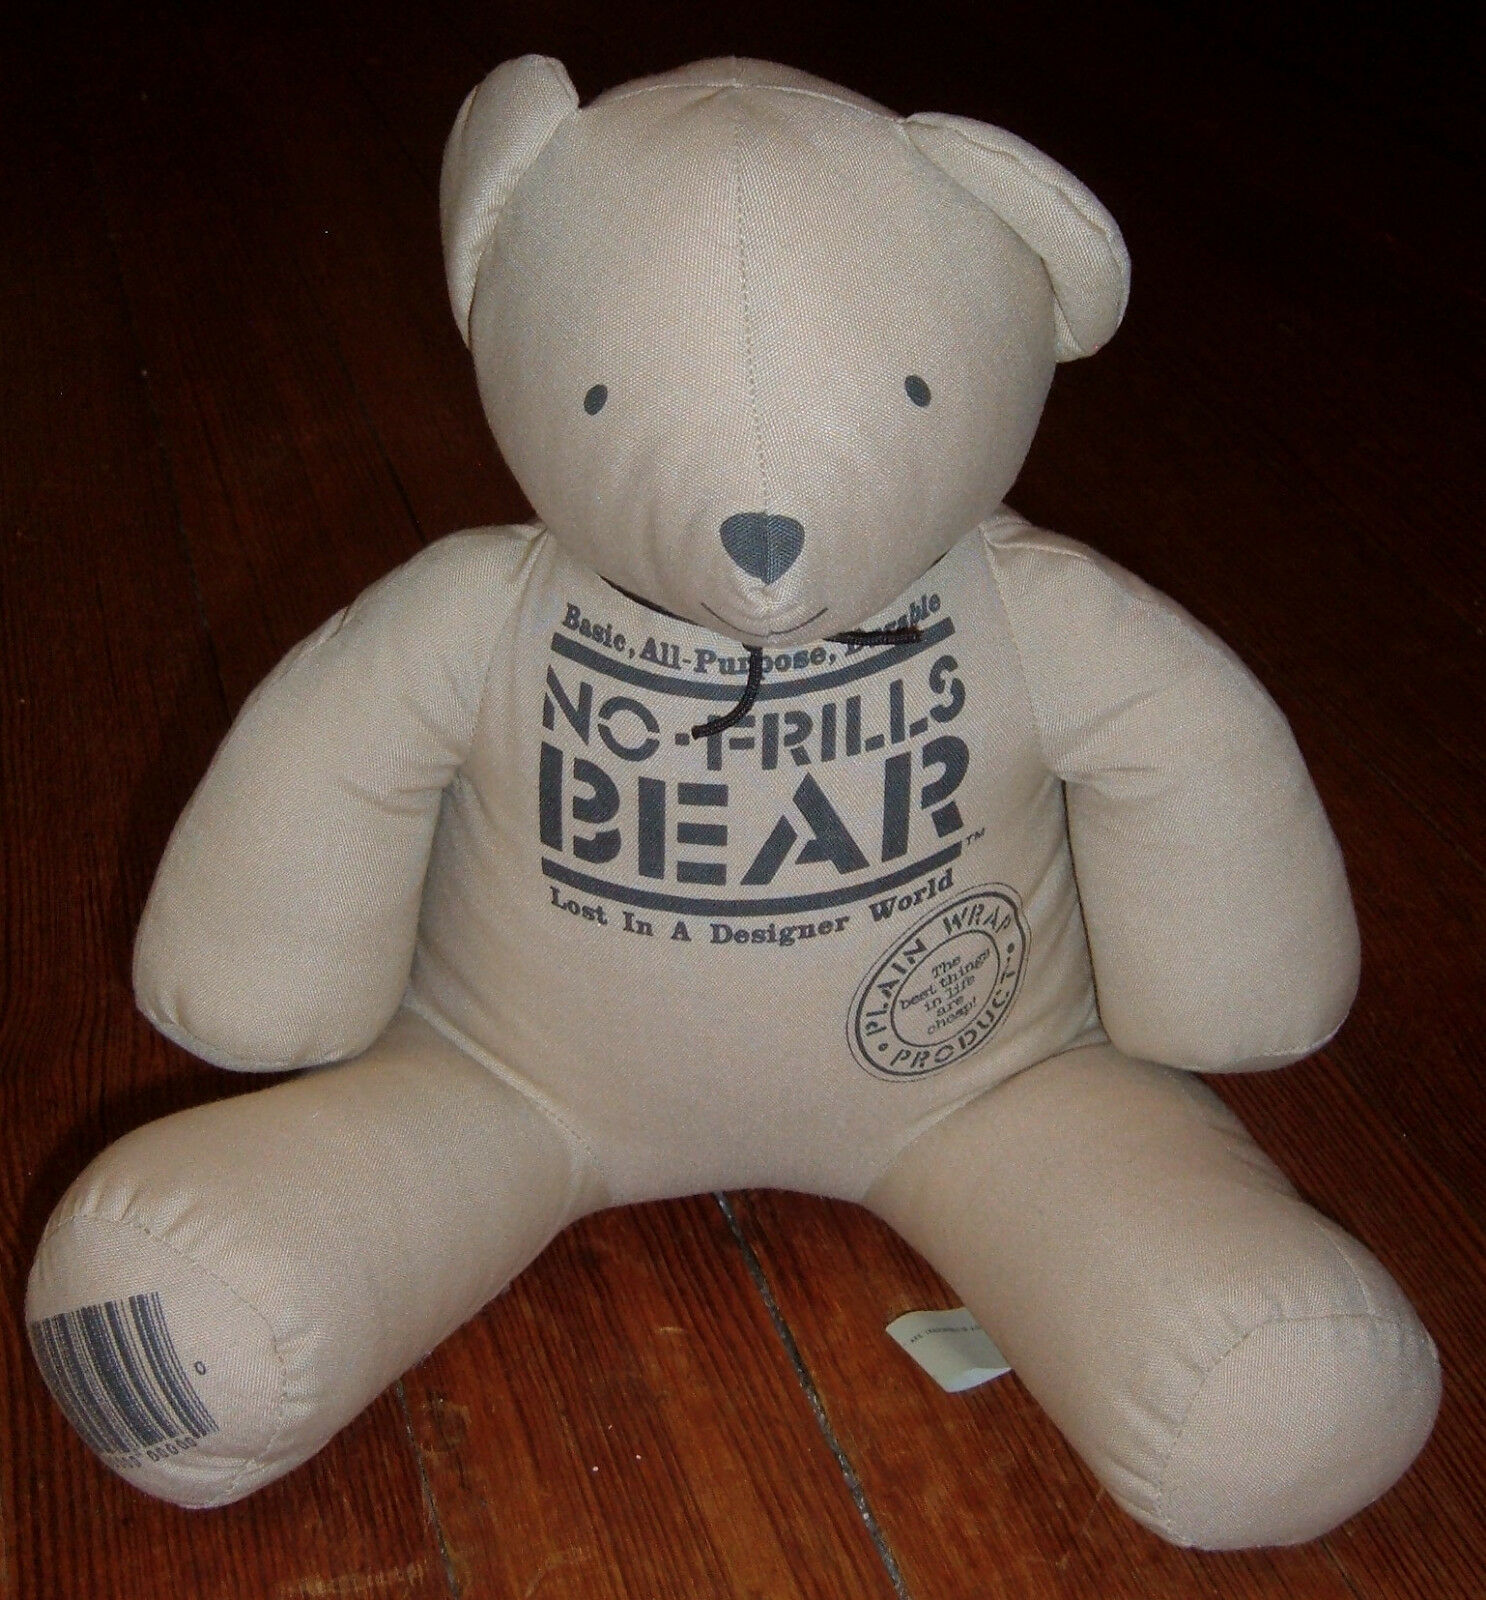 Basic All-Purpose Durable NO-FRILLS BEAR Lost In A Designer World ©1985 R. DAKIN